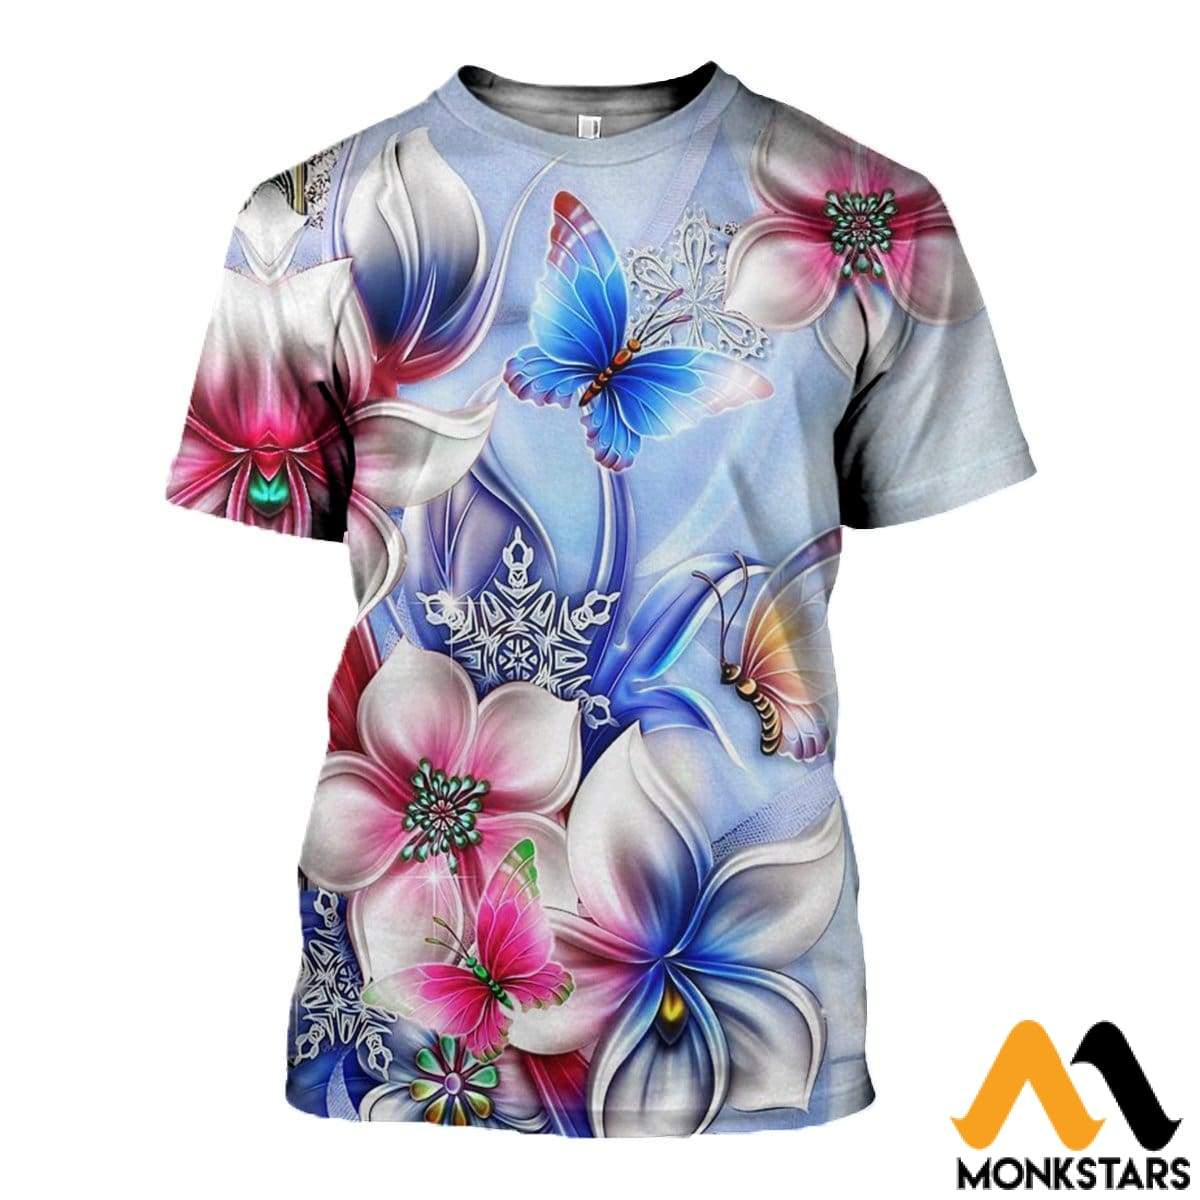 ce9e28a3f887 3D All Over Printed Butterflies and Flowers Clothes - Monkstars Inc.